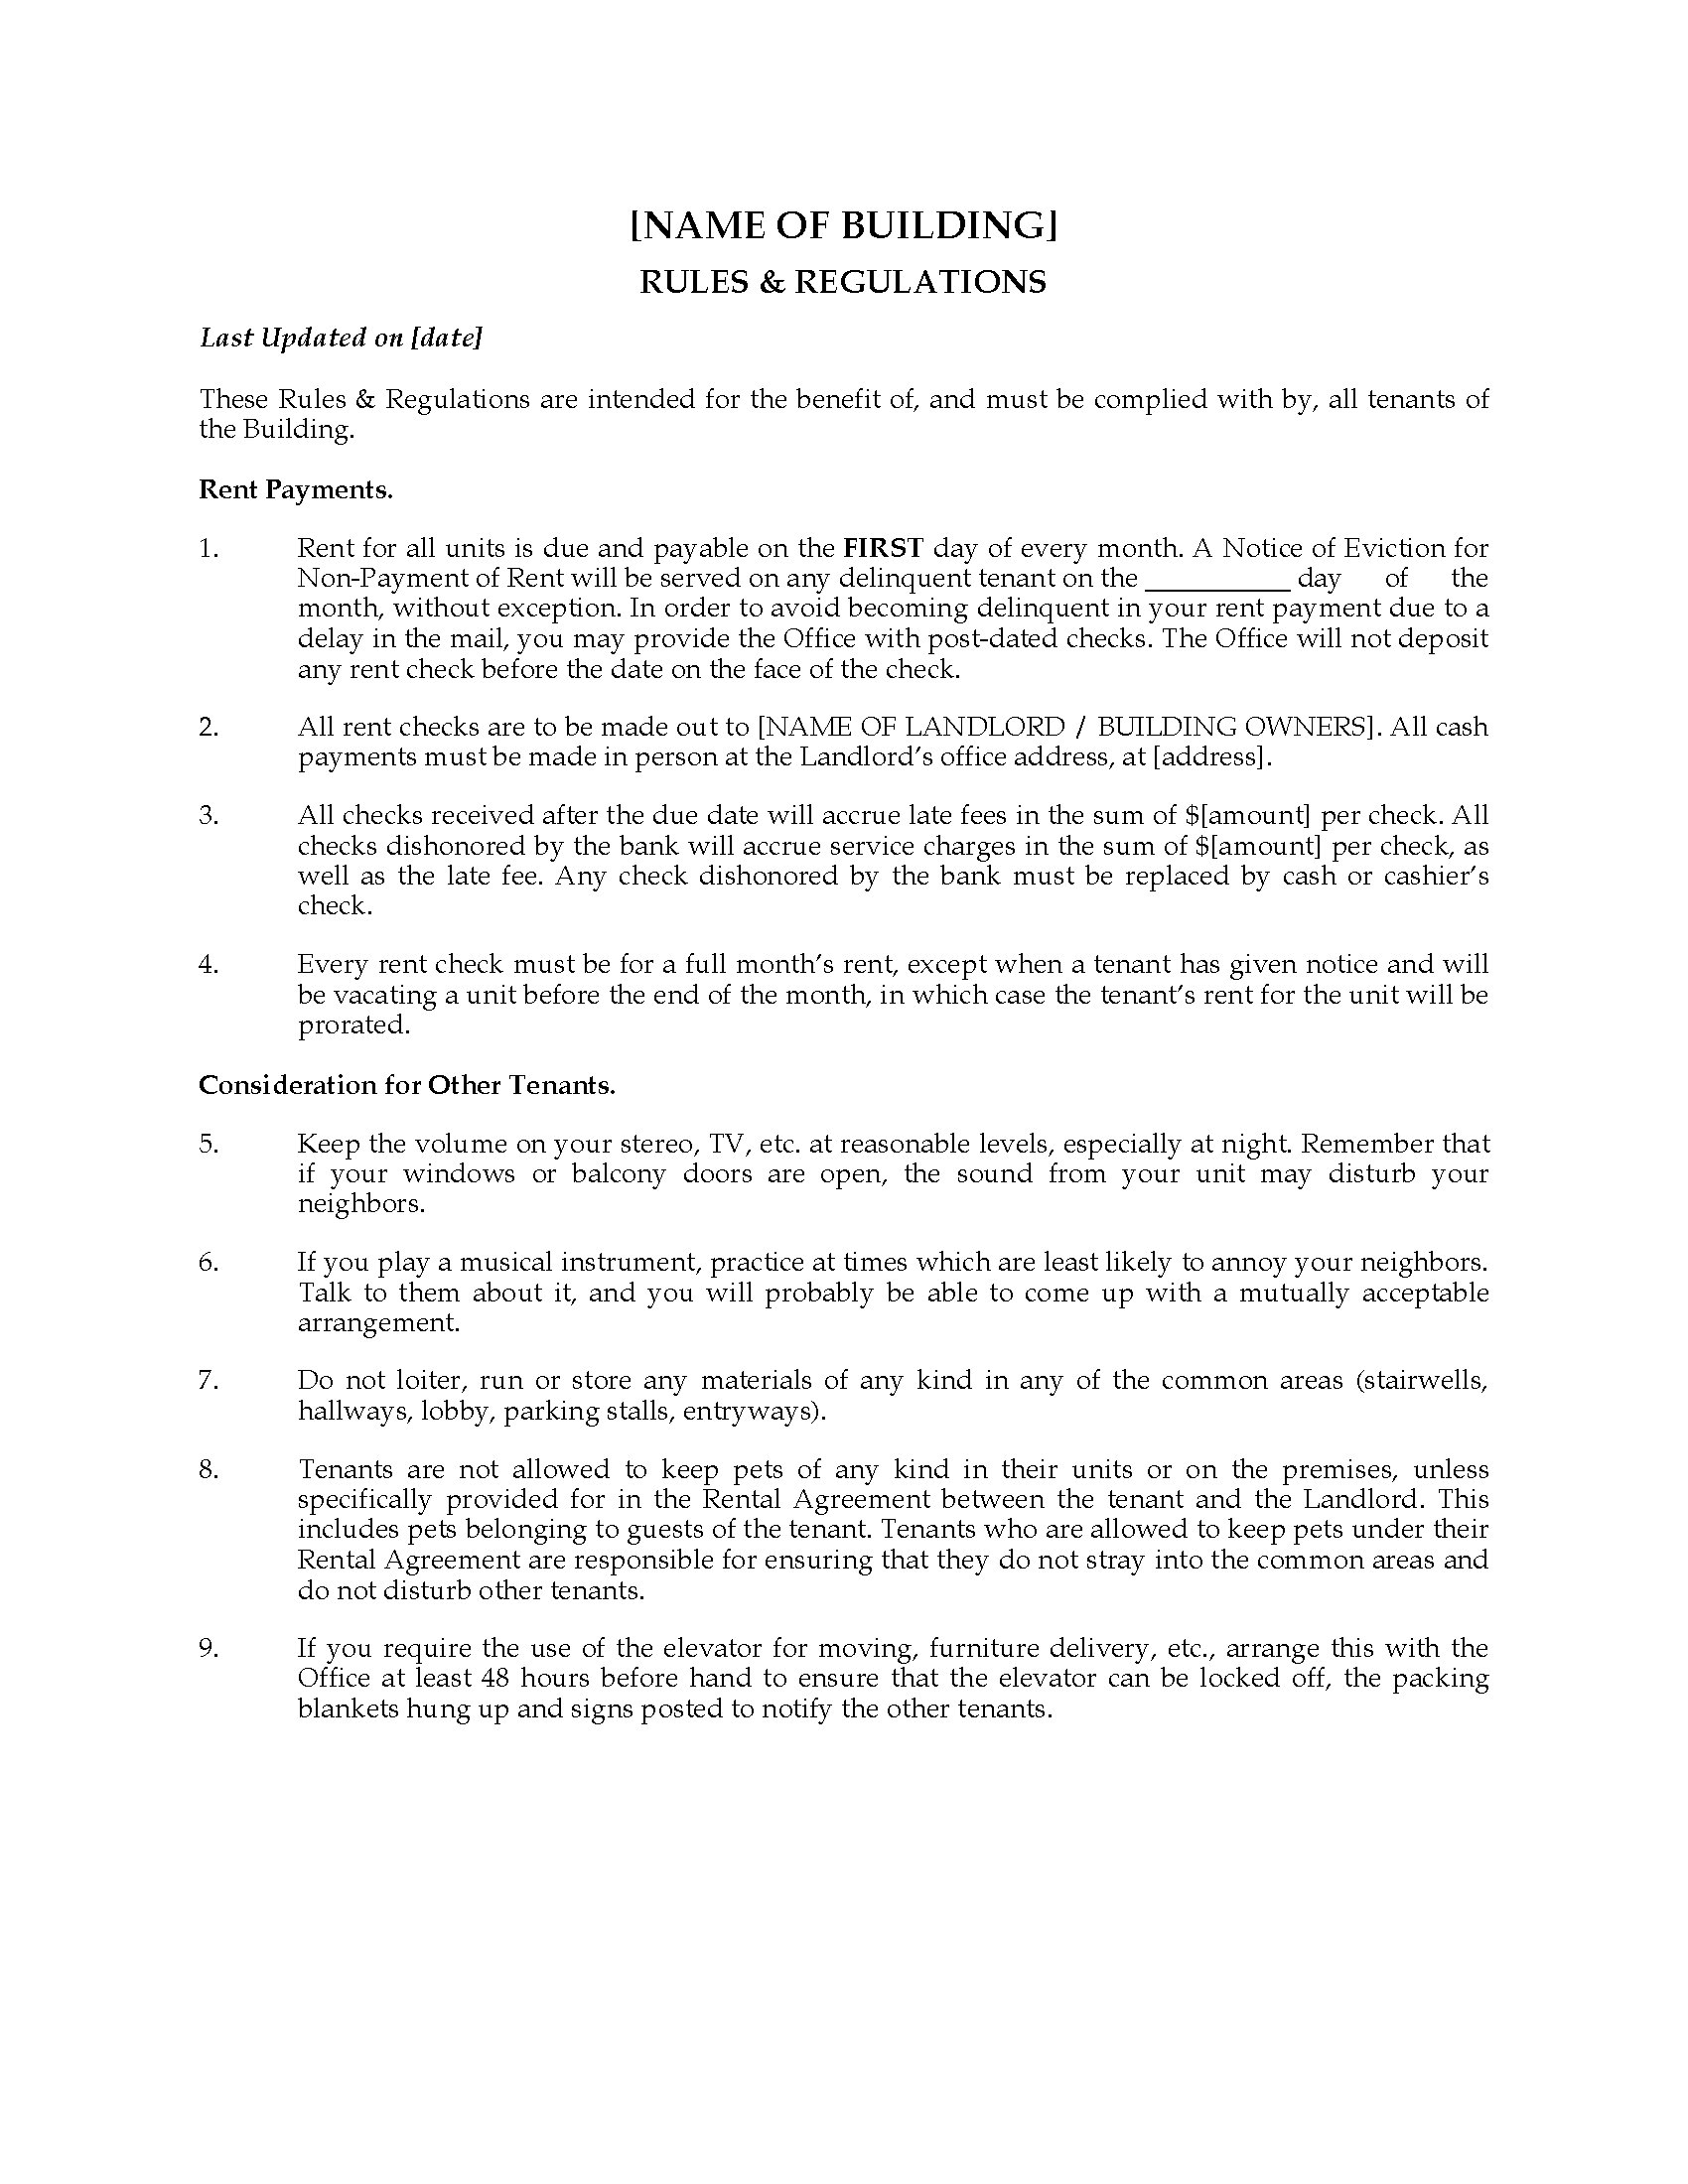 Office Rules And Regulations Template Choice Image